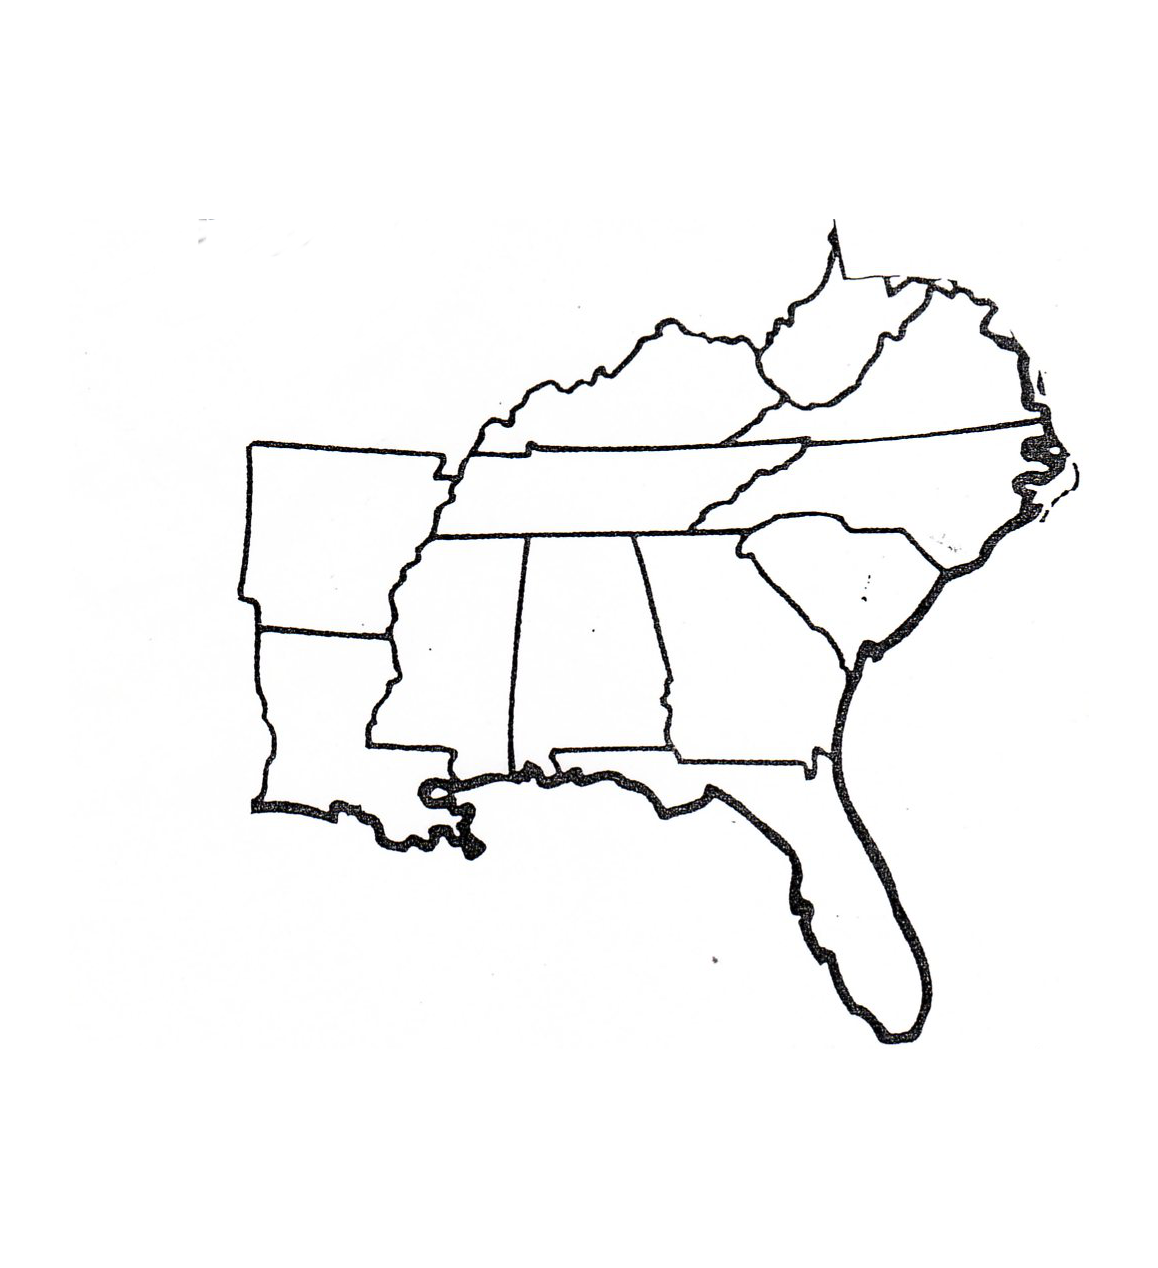 Us Southeast Map Blank Blank Map Of Southeast Region Within Us | Southeast region